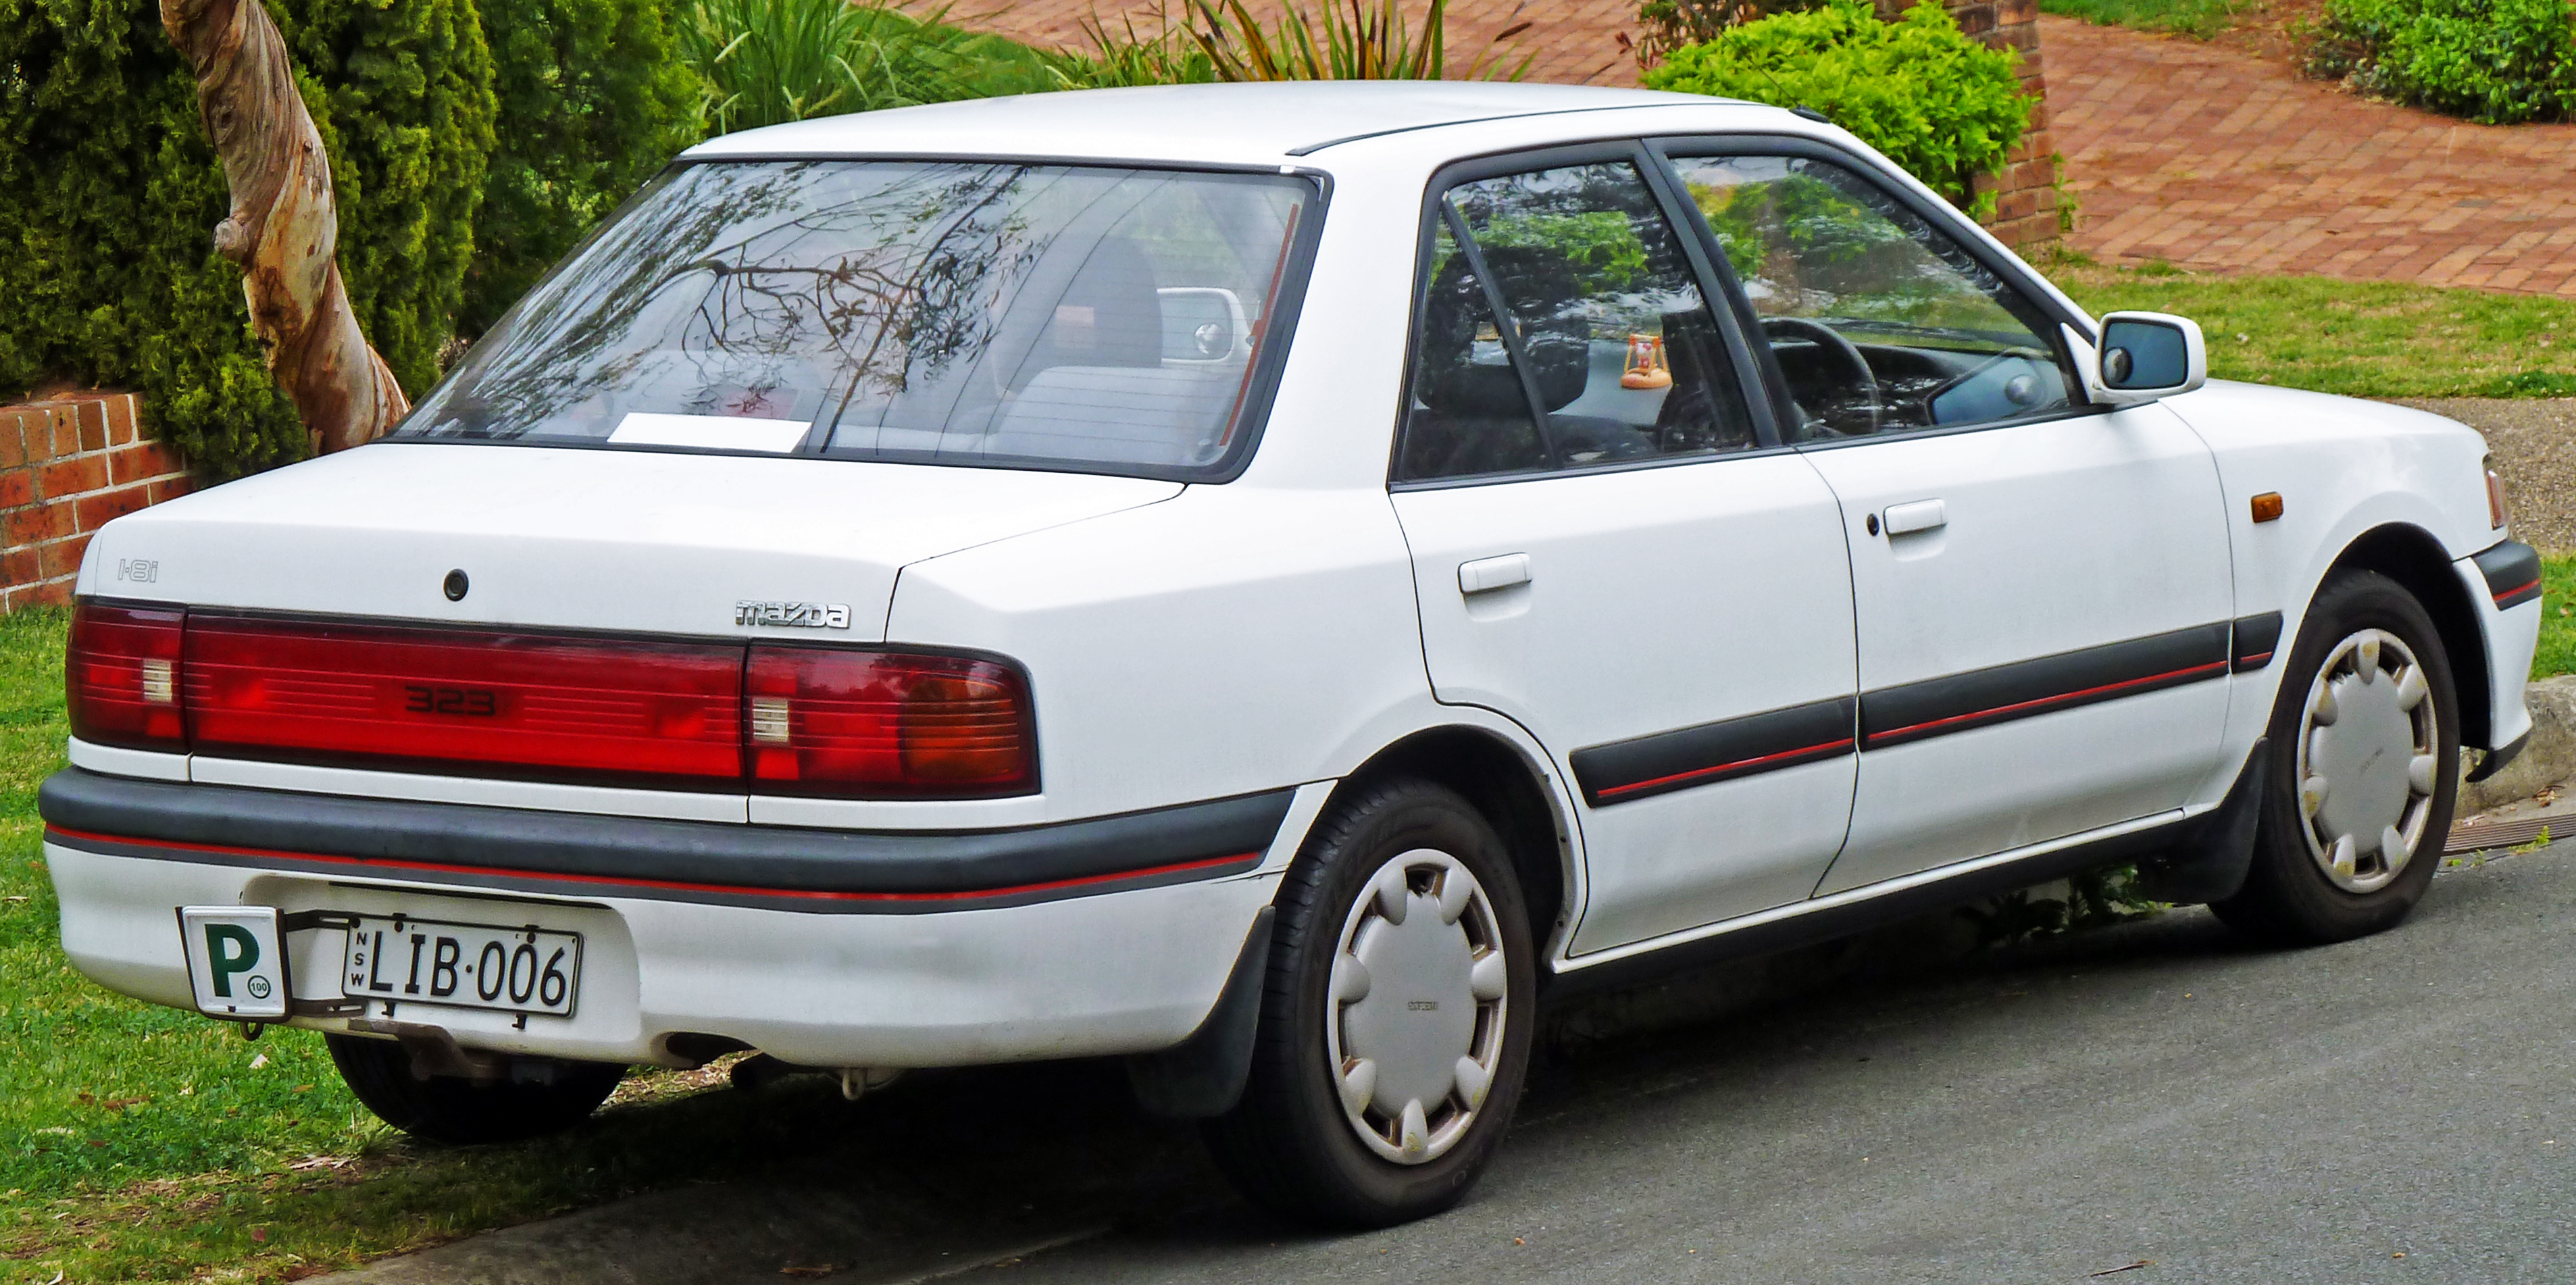 mazda 323 pictures #1